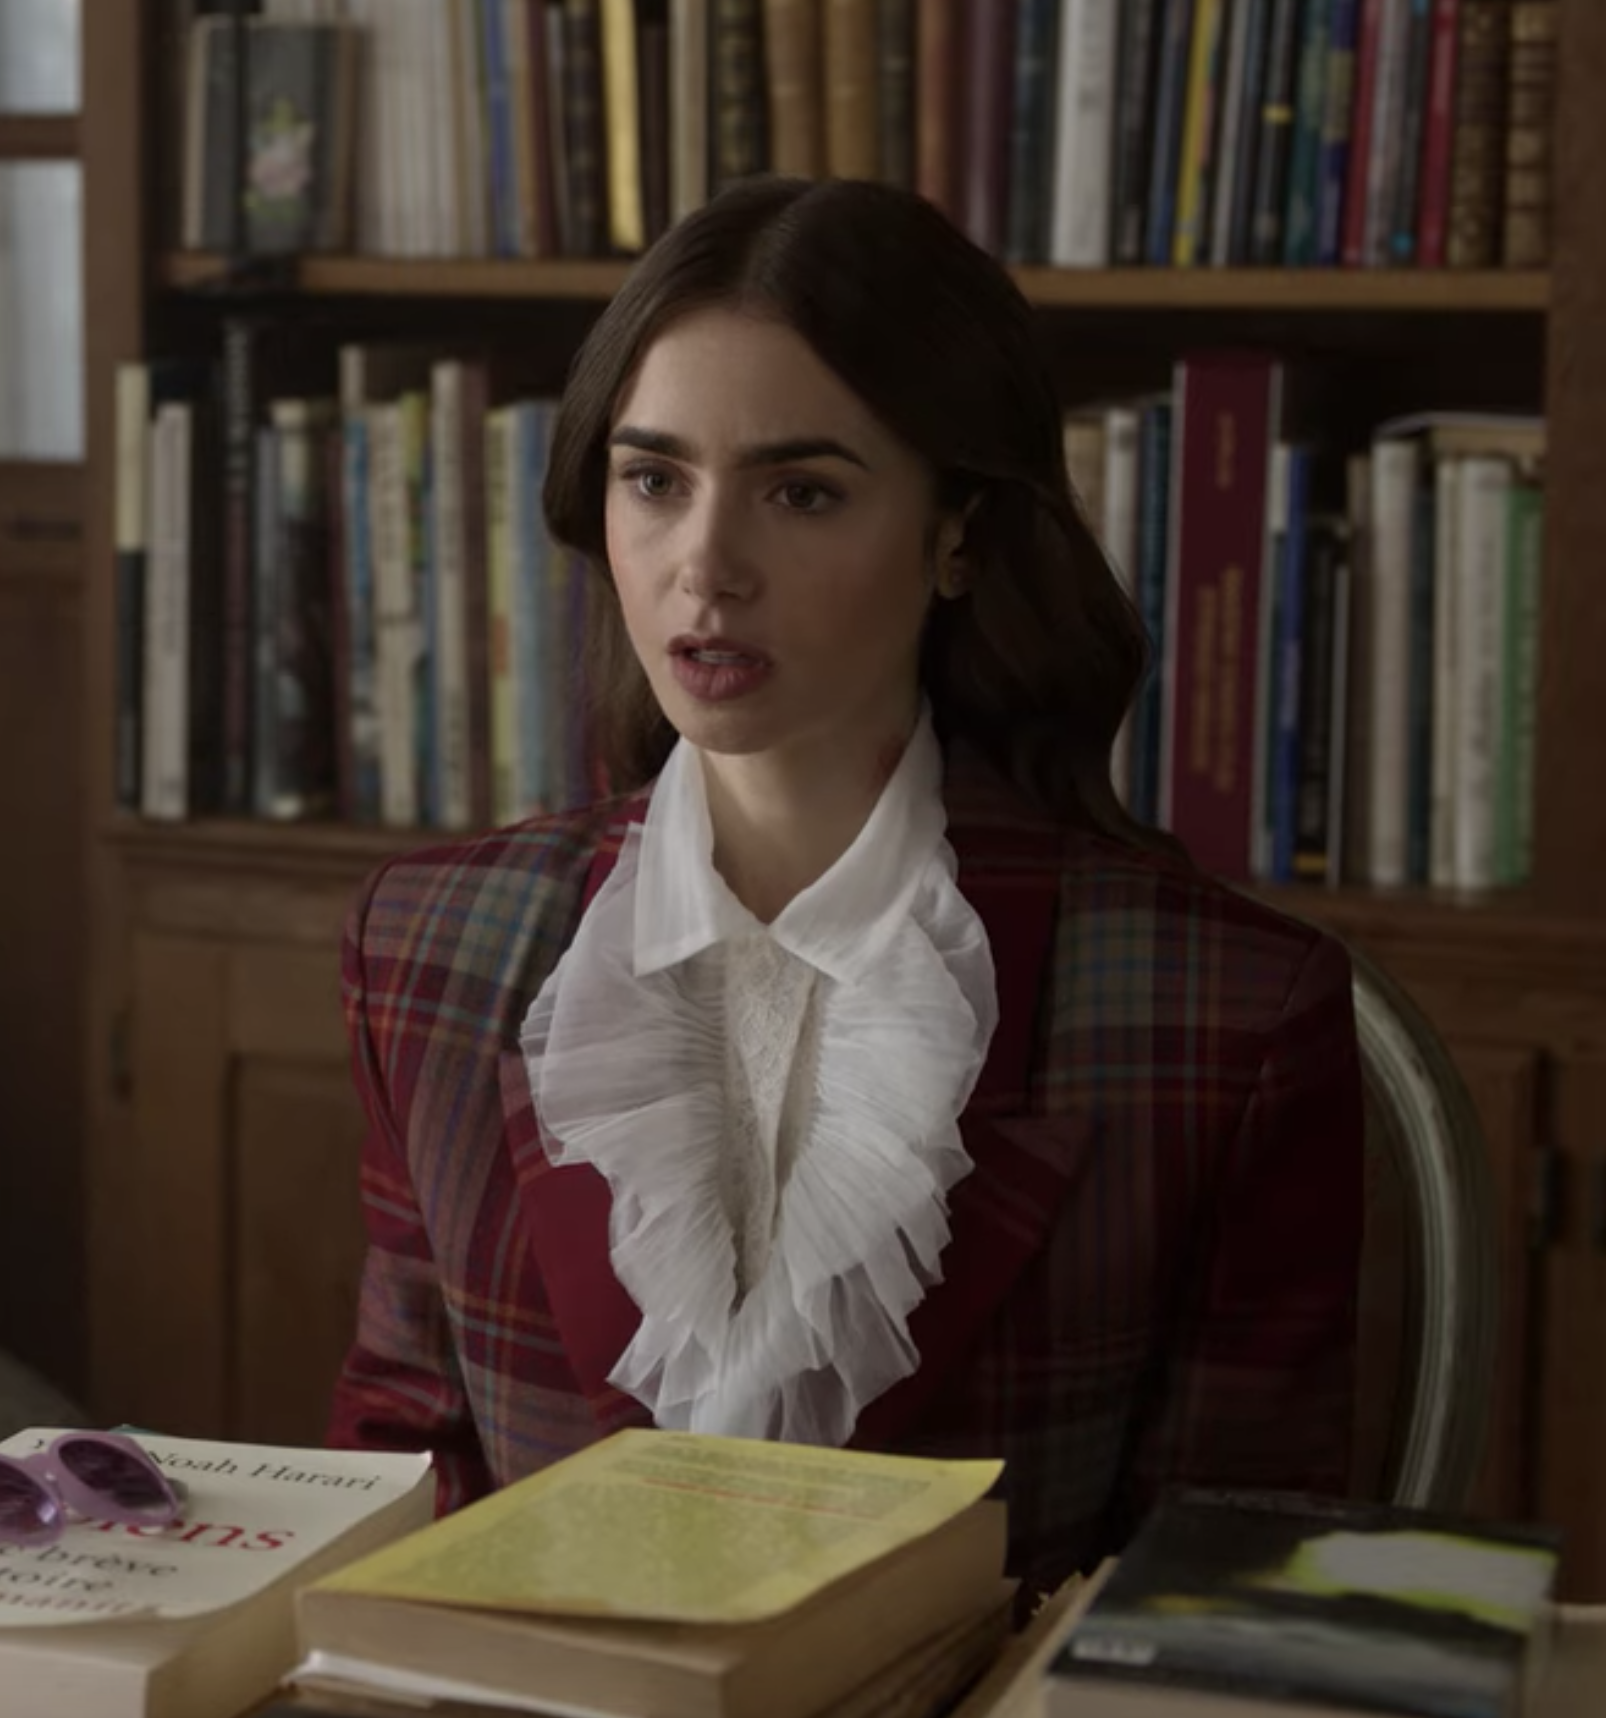 Emily sits at a desk wearing a plaid structured blazer over an extremely frilly white button up blouse